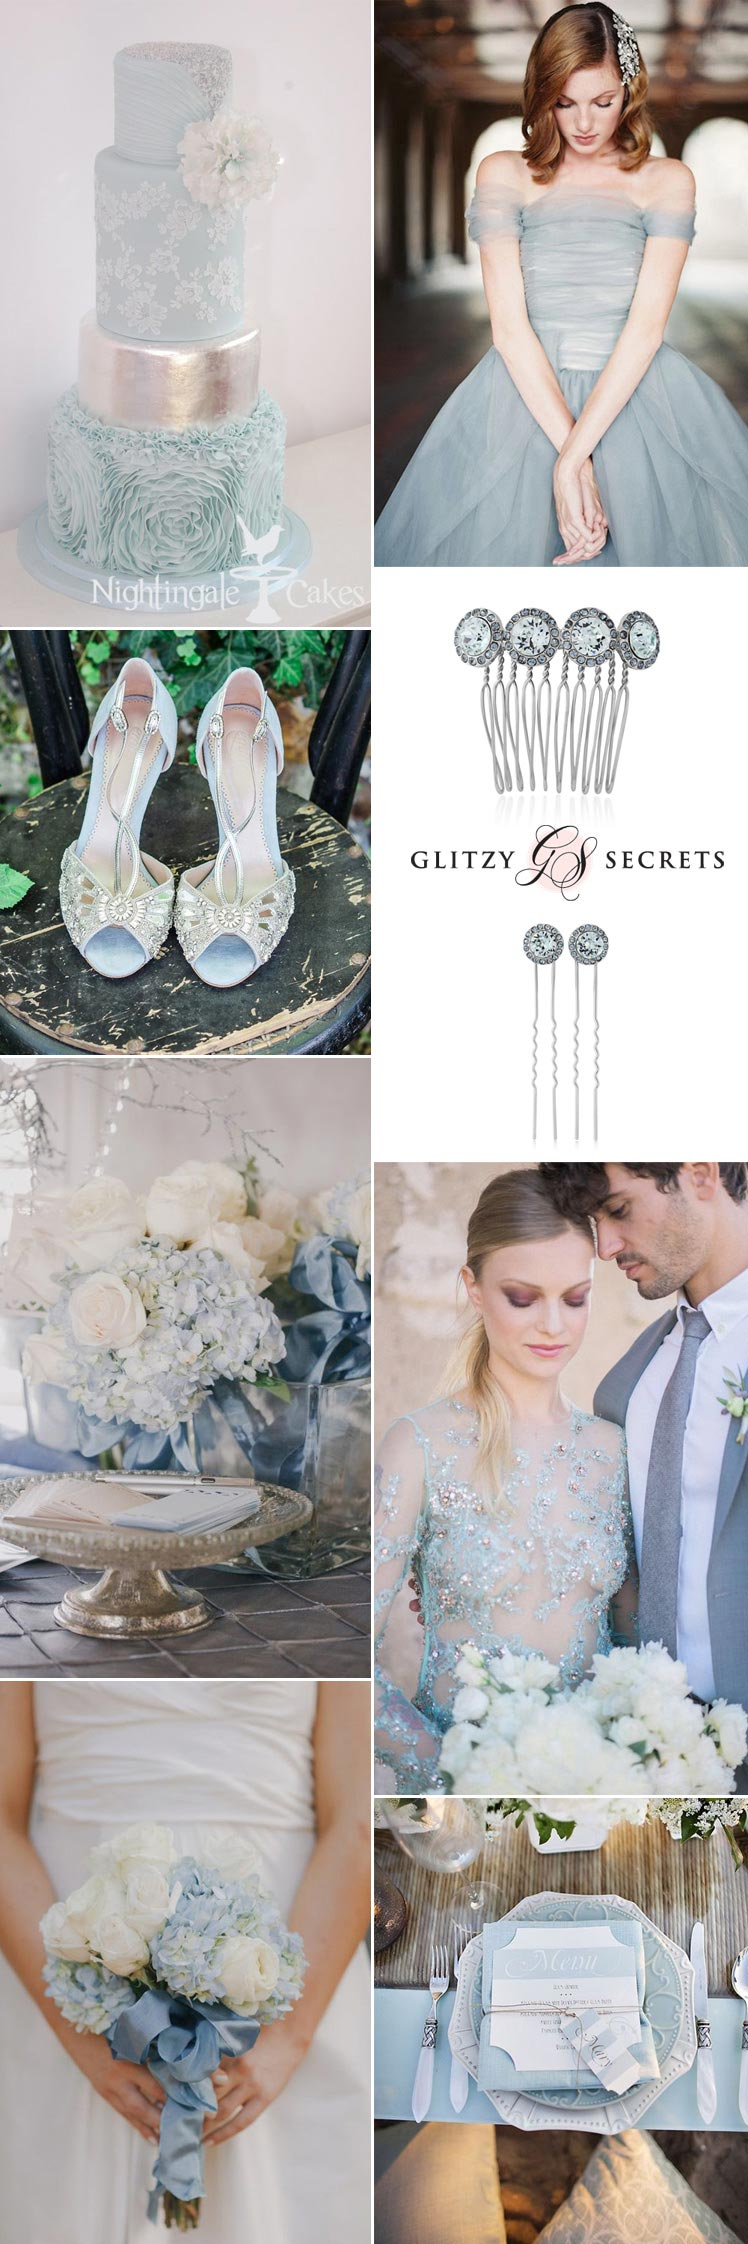 pastel blue and silver wedding ideas